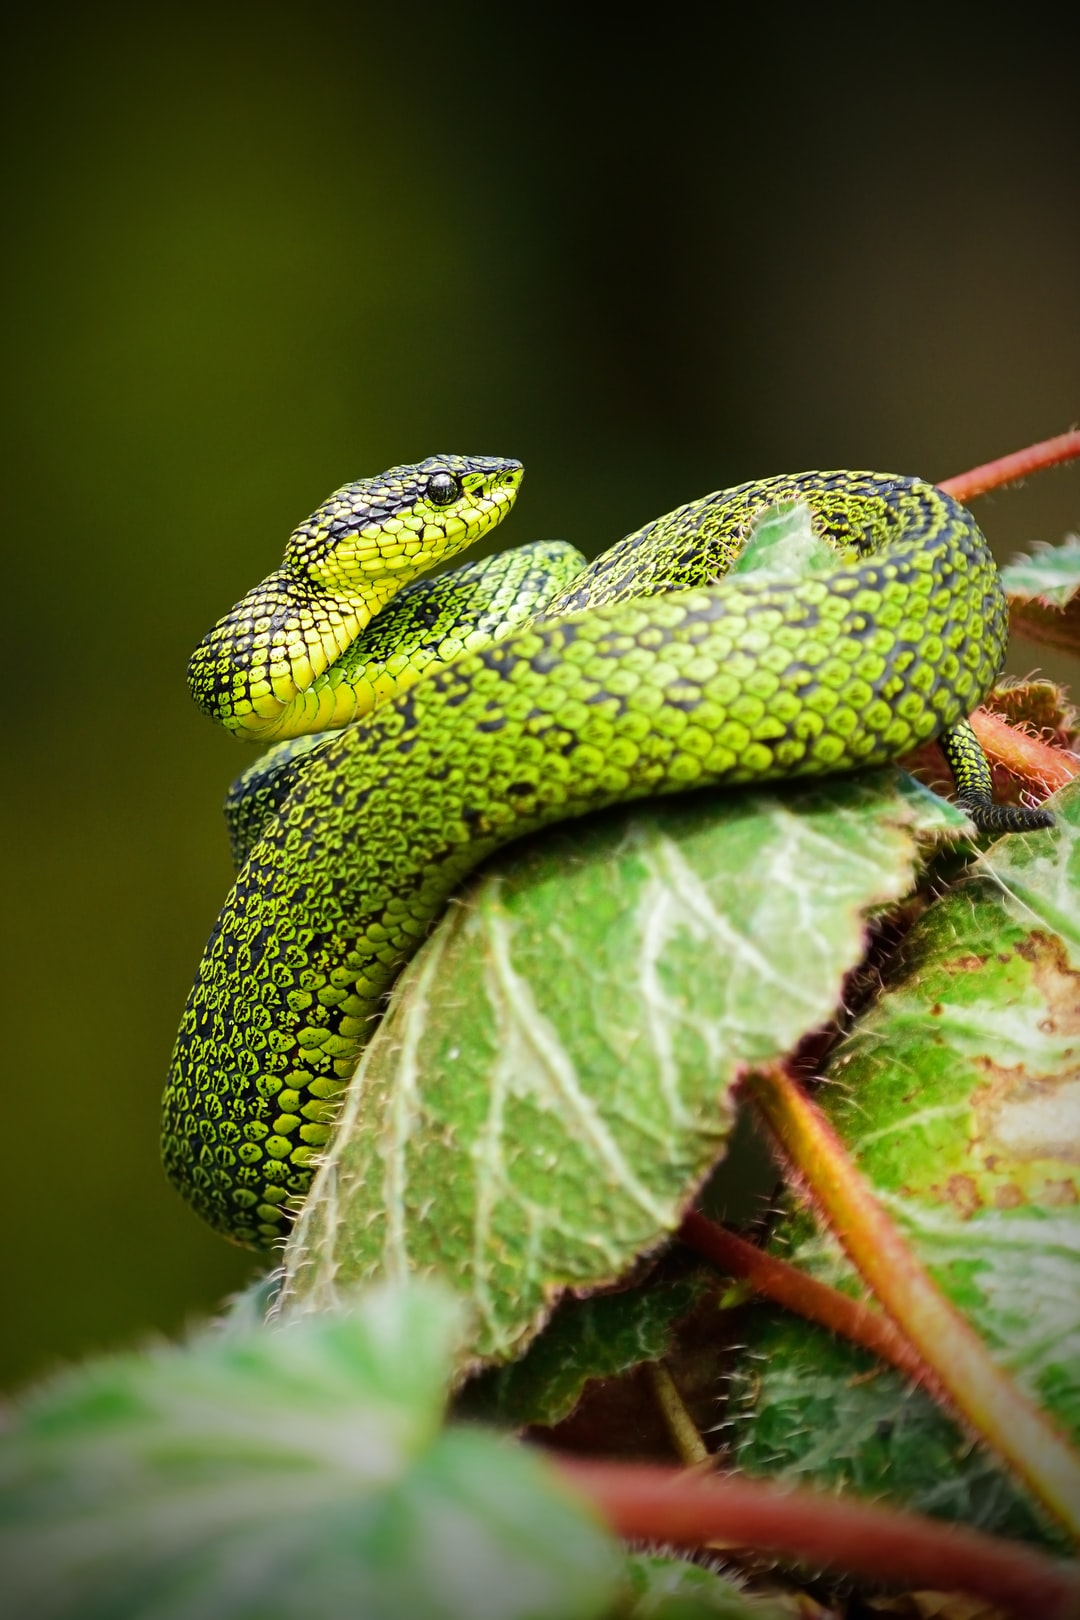 A green snake coiling a leaf